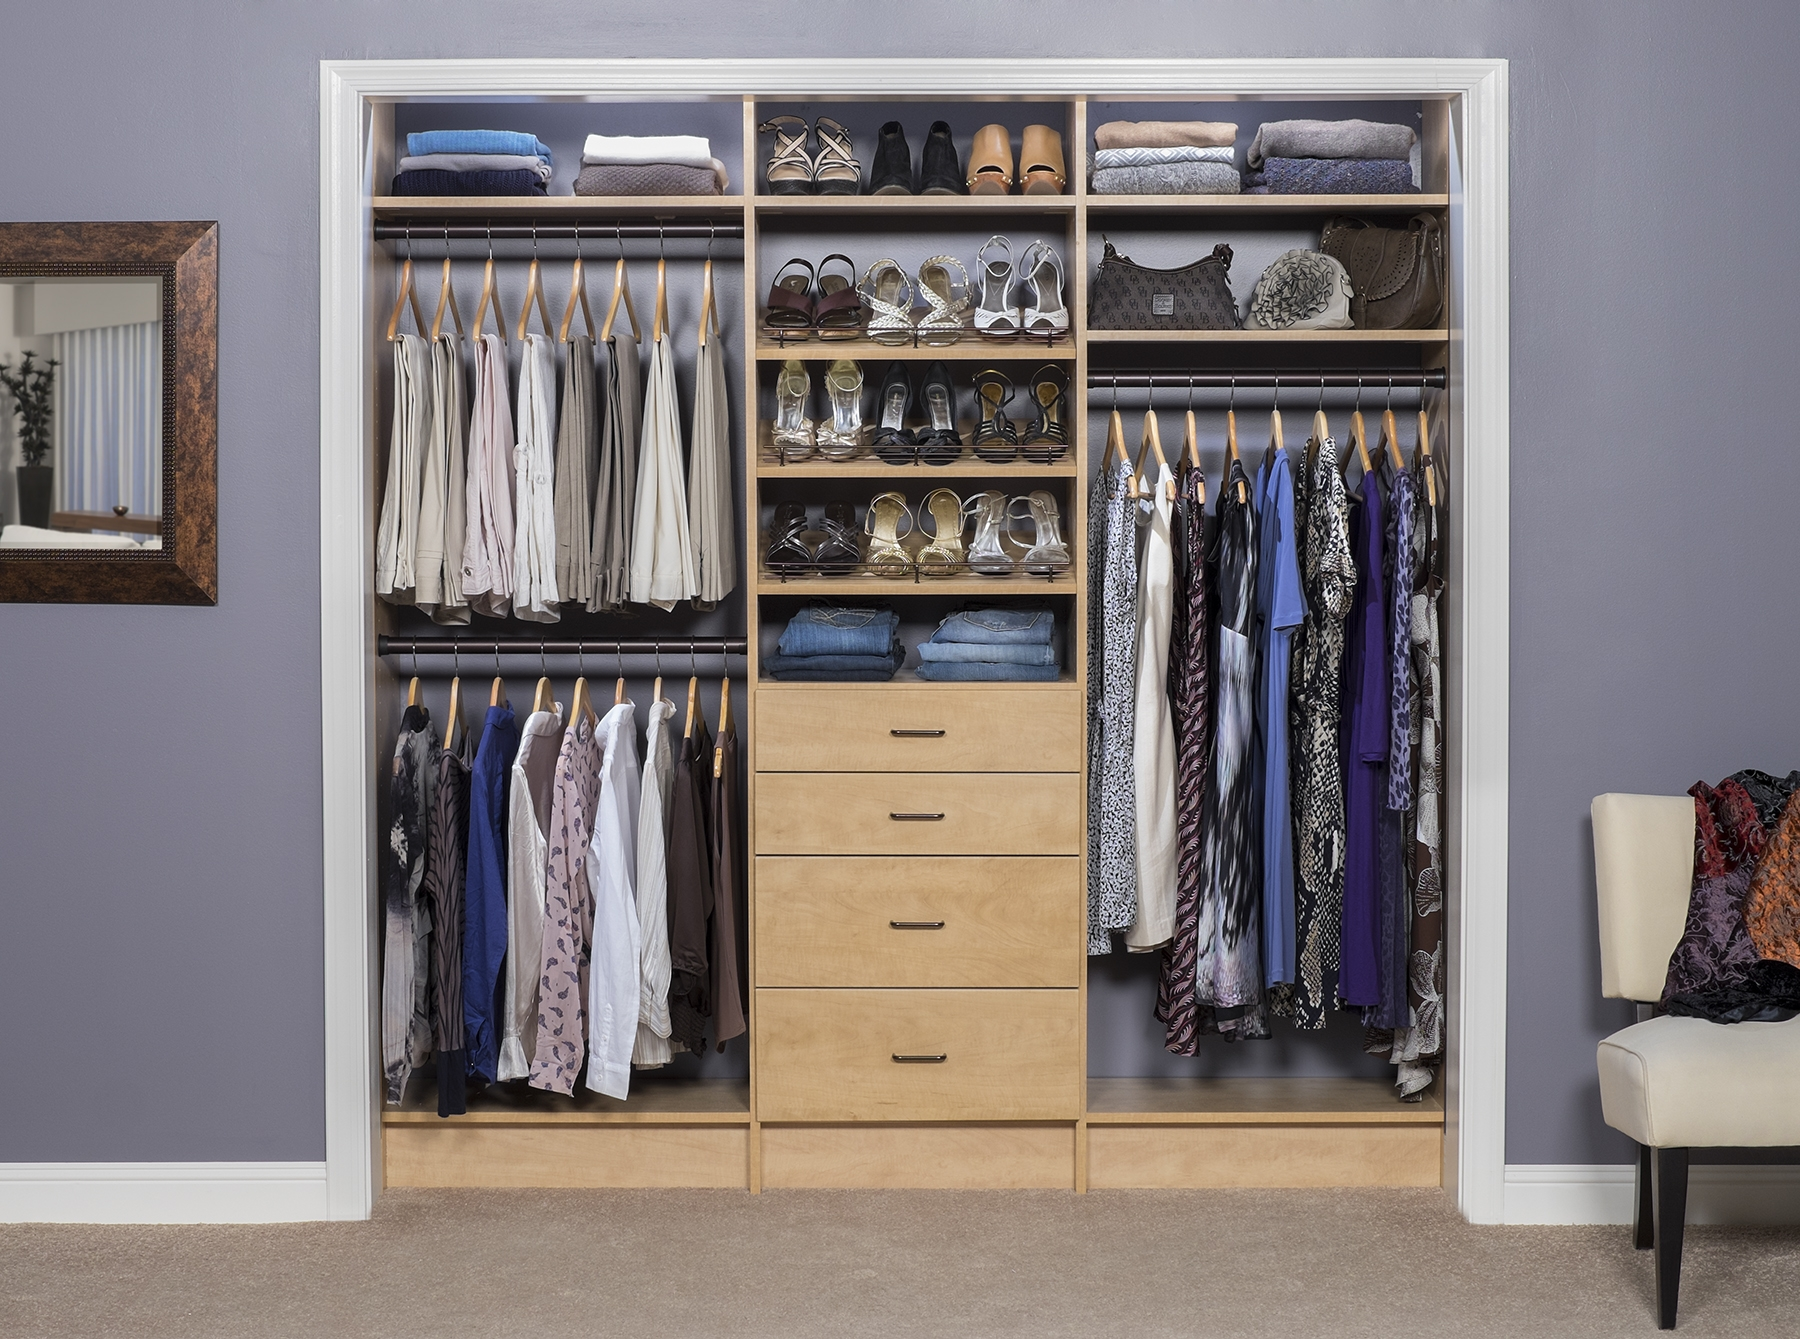 Bedroom Design With Walk In Closet